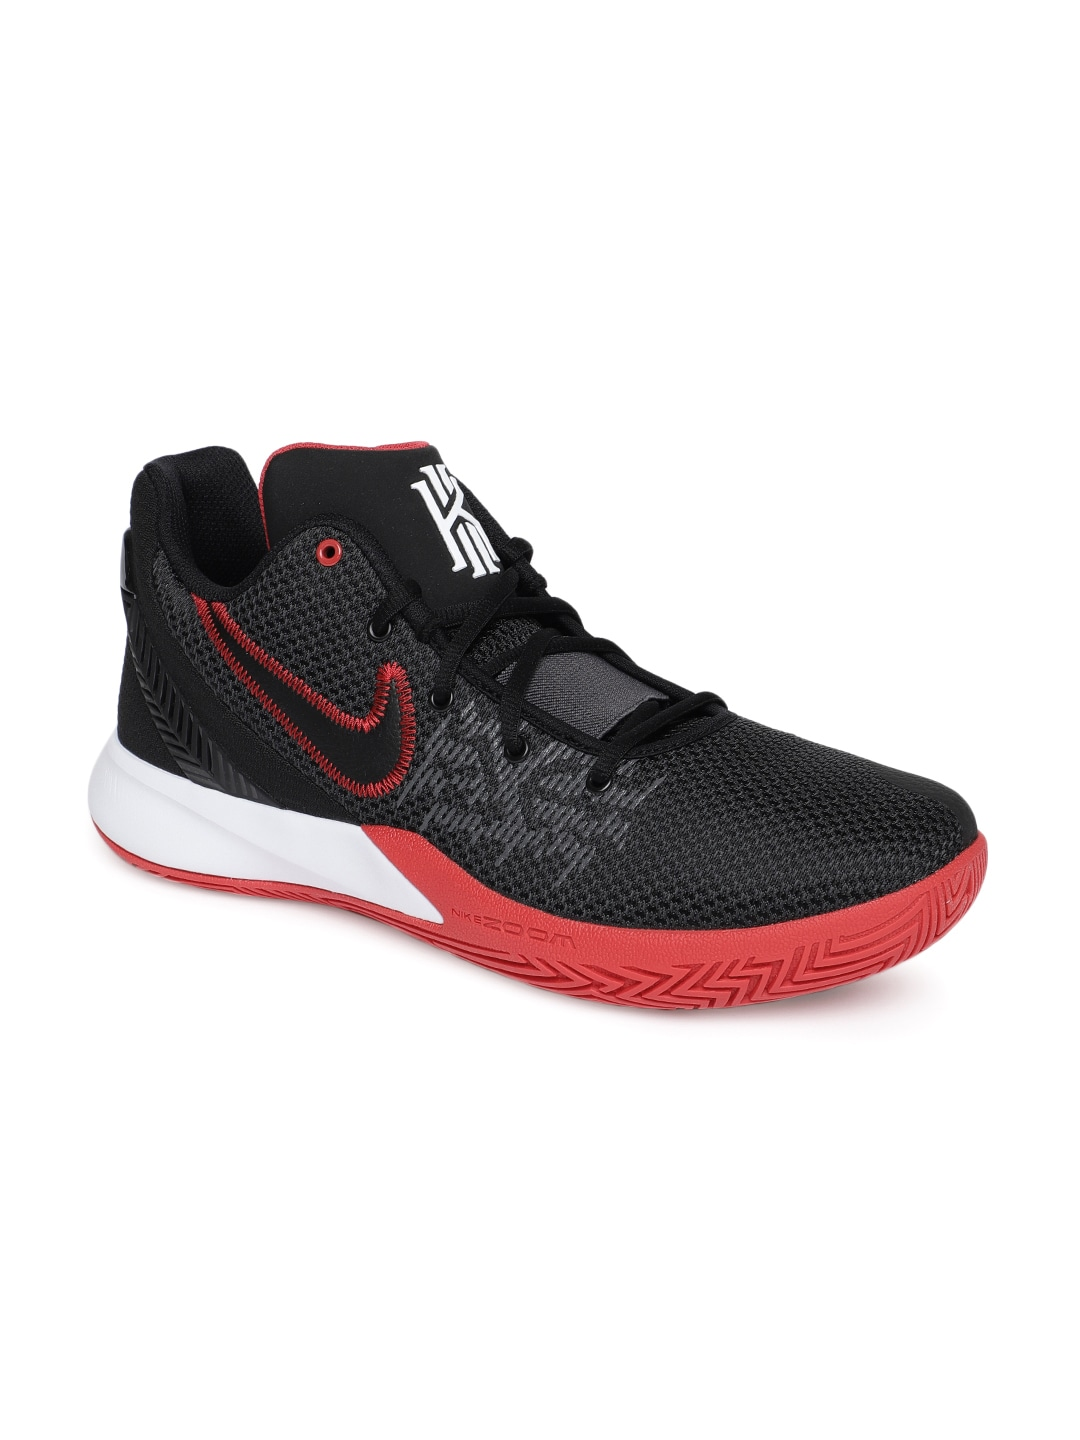 f8b2c612c7db Basket Ball Shoes - Buy Basket Ball Shoes Online